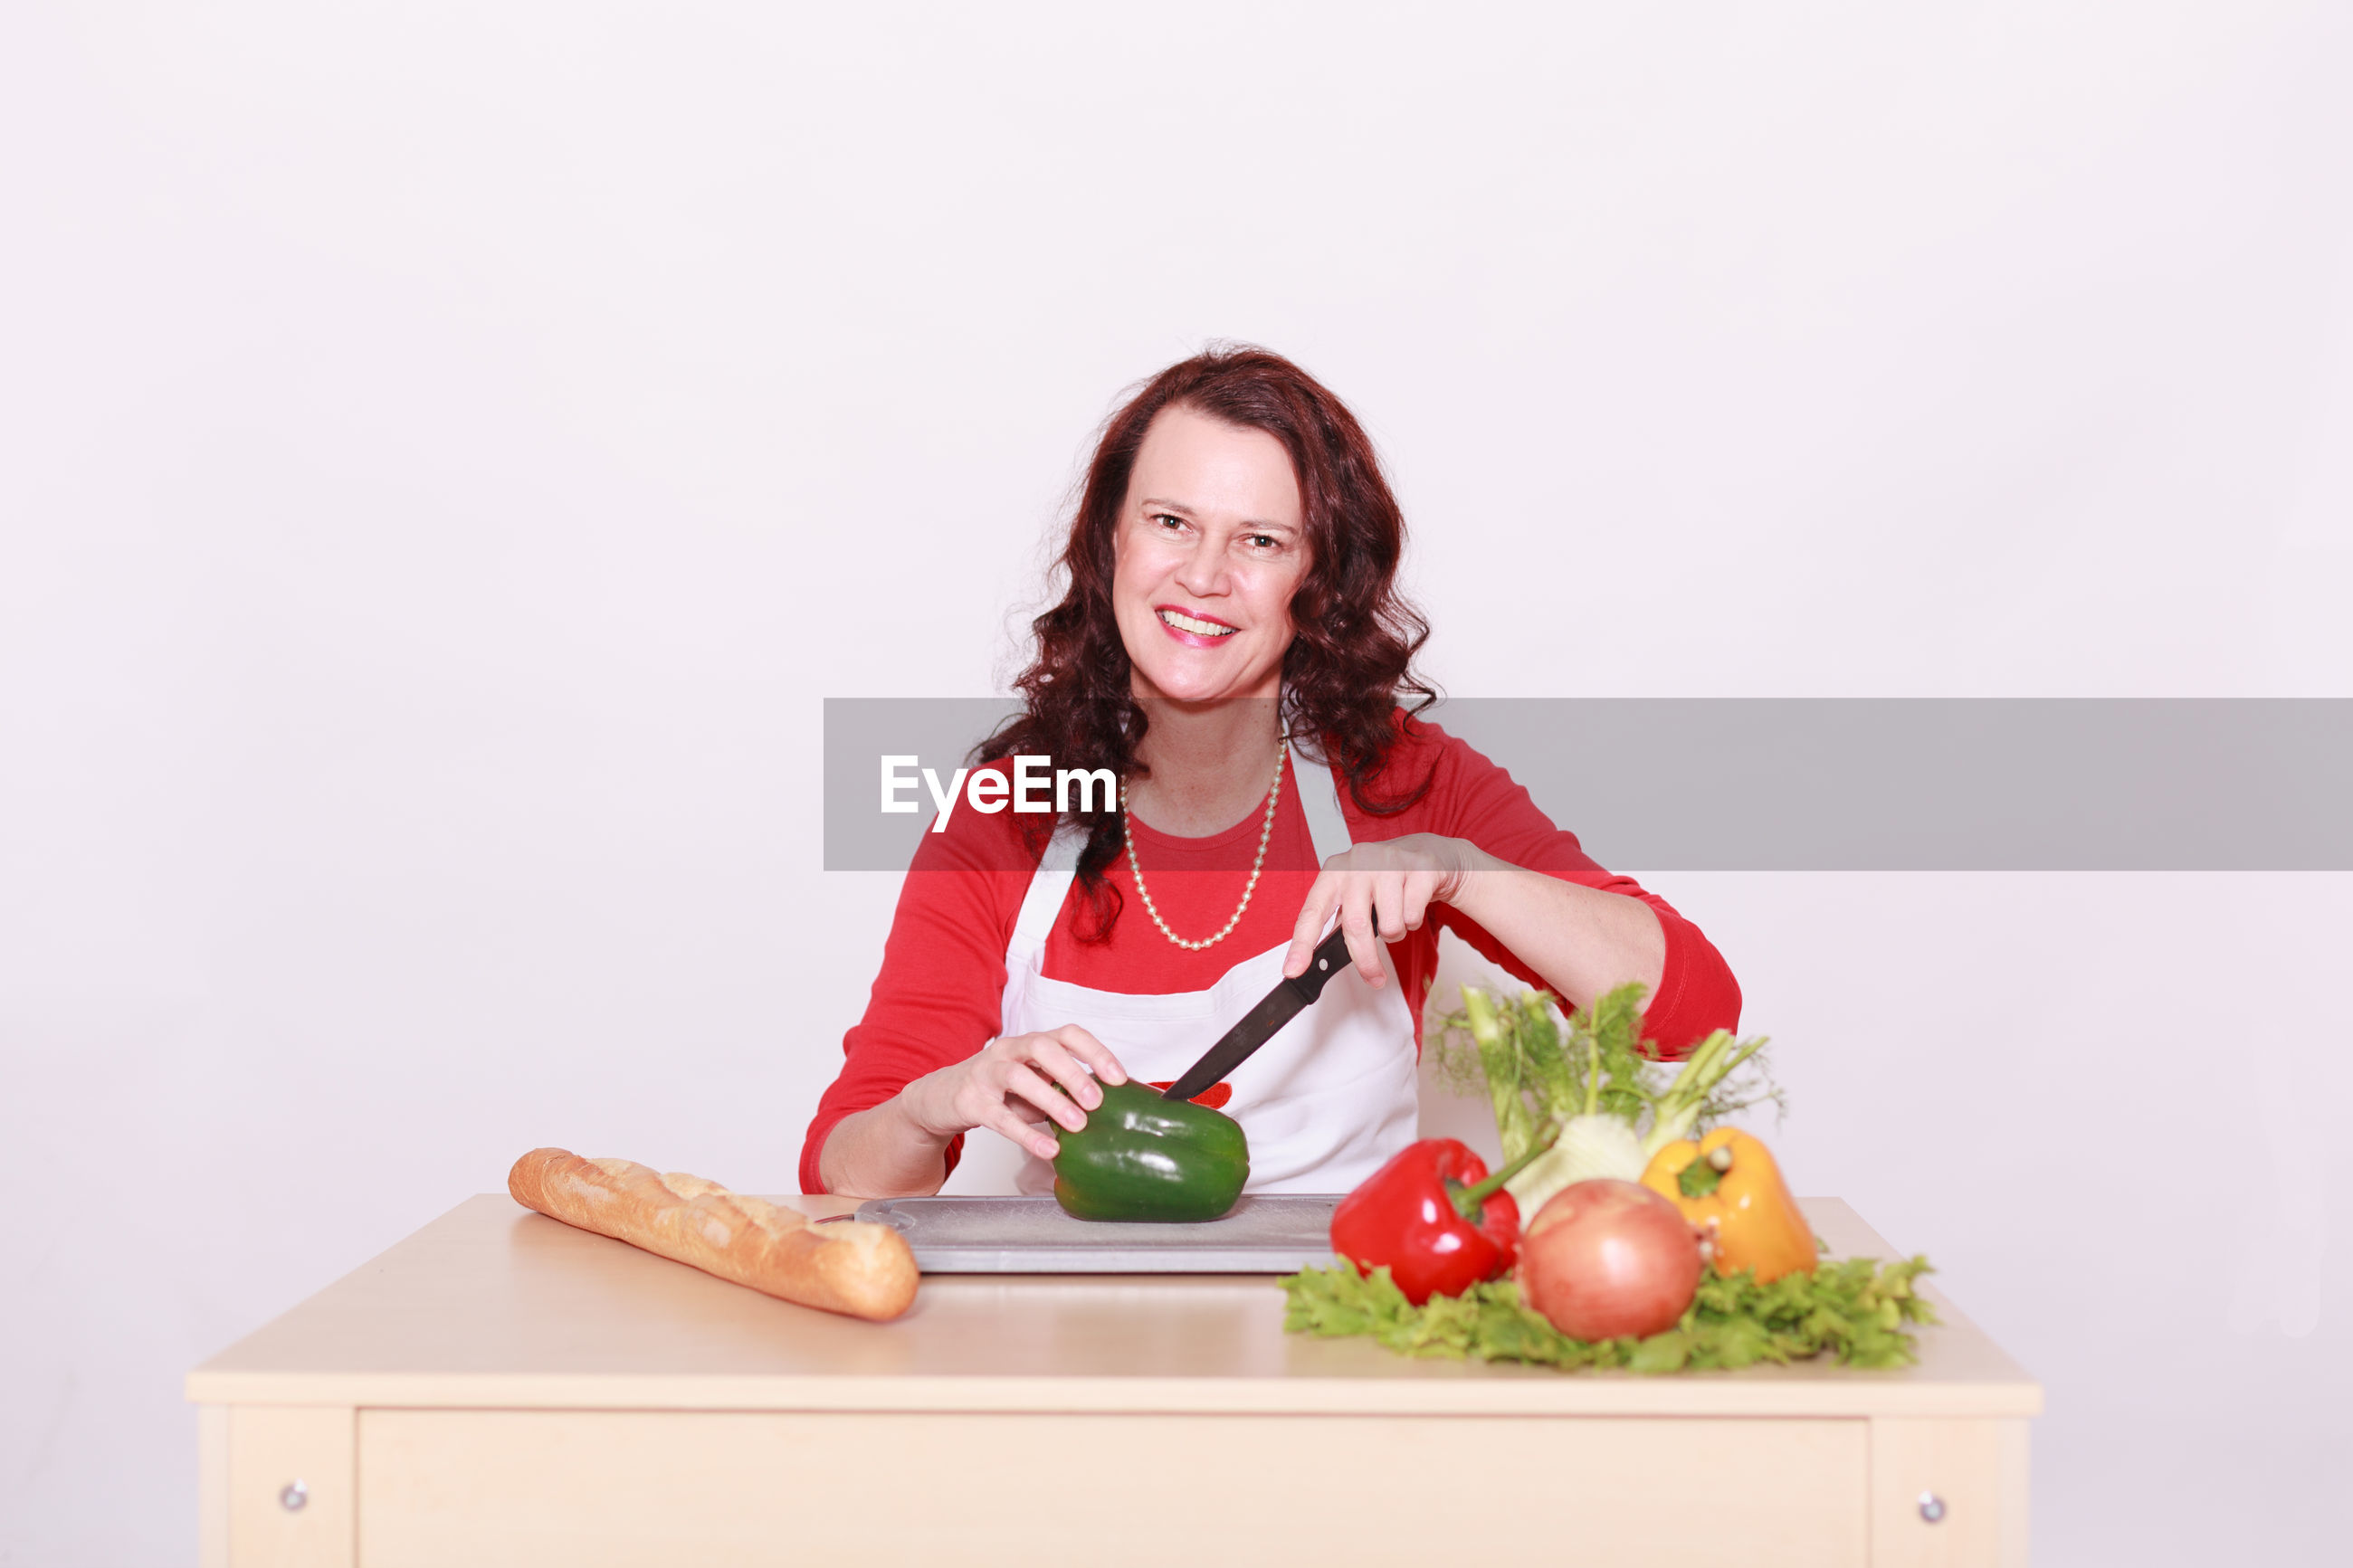 Portrait of smiling woman cutting food while sitting at table against white background